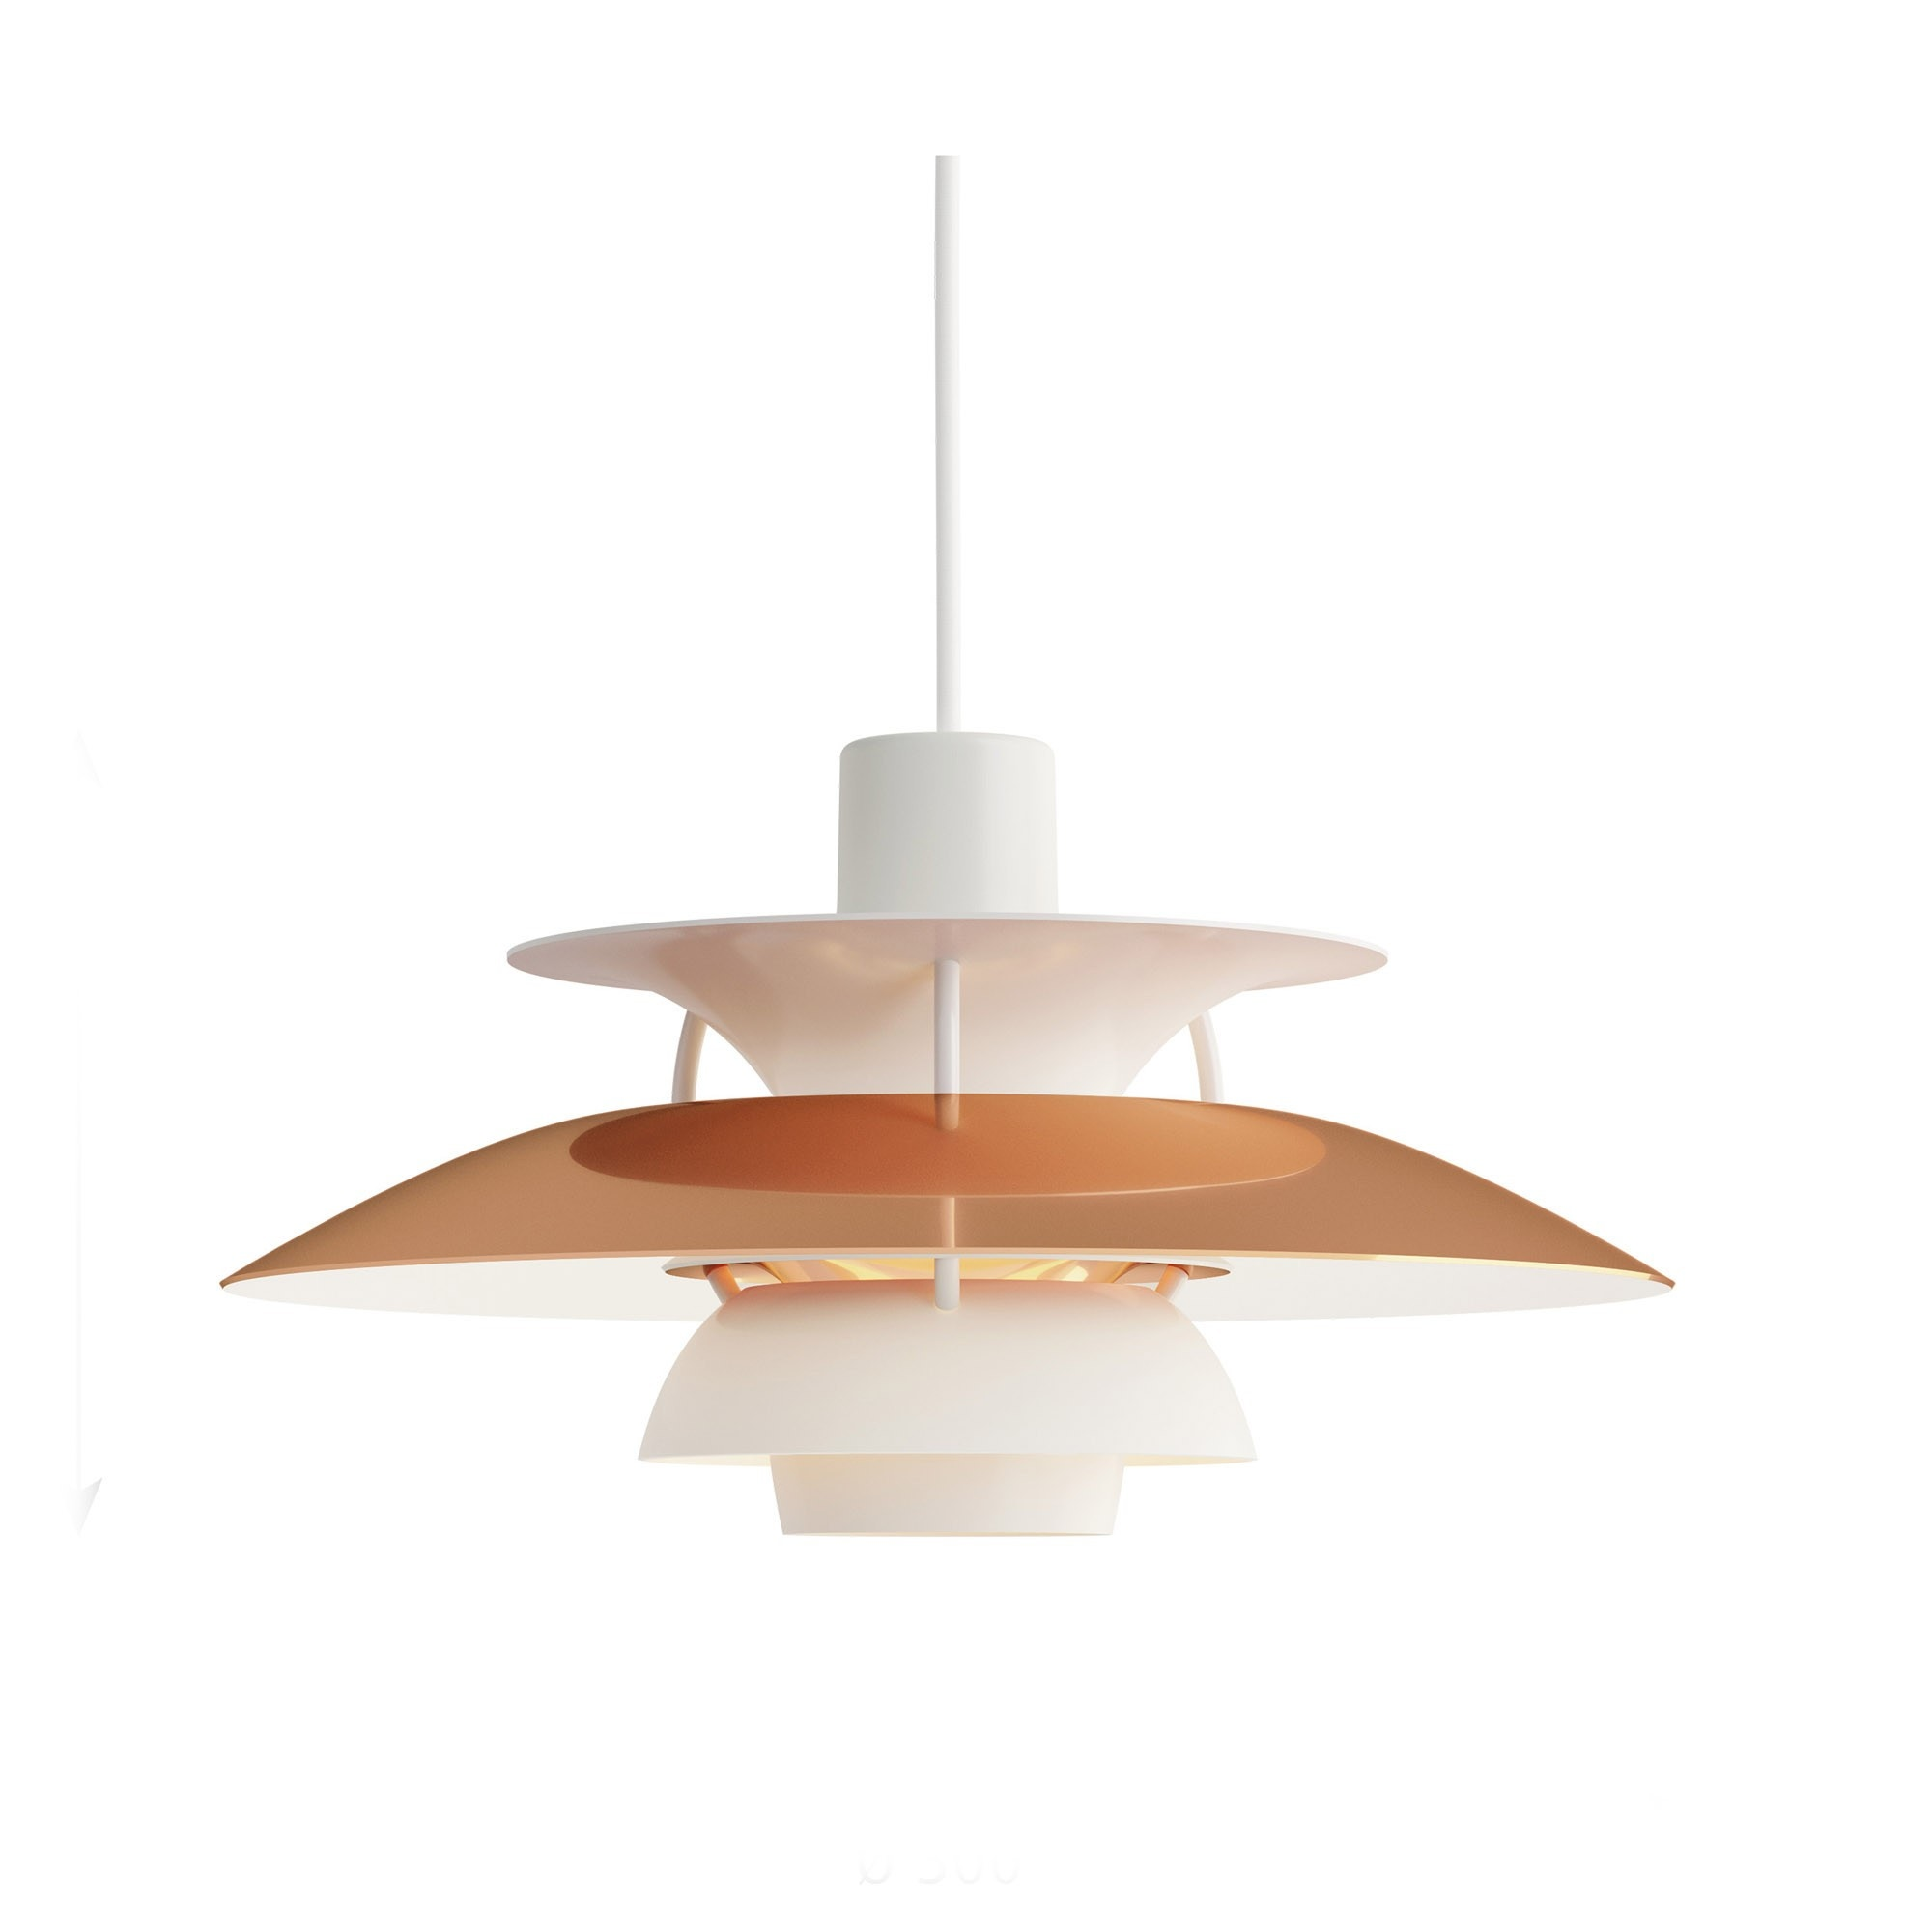 Louis Poulsen PH 5 Mini Pendant Lamp